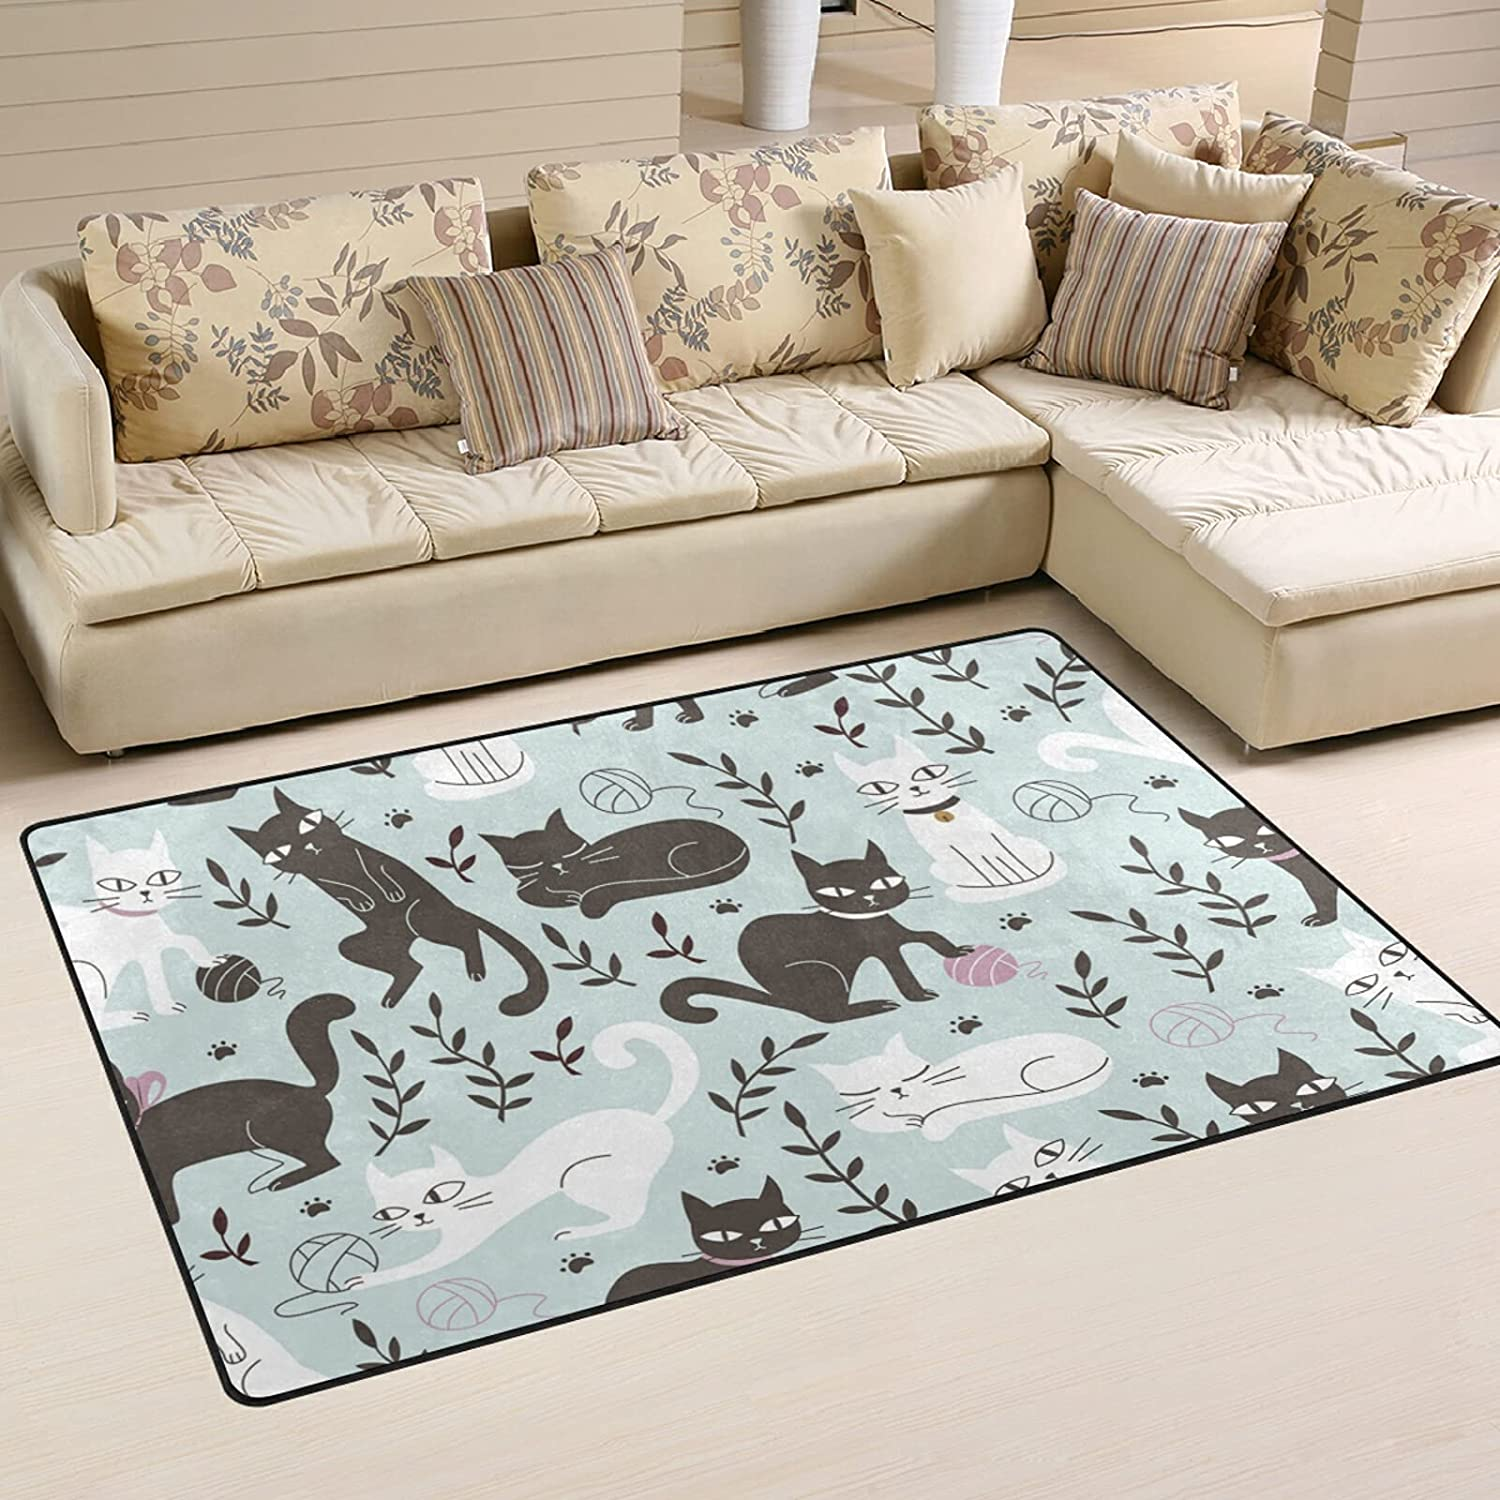 Cats in Doodle Style Large Soft Rugs Max 86% OFF Nursery Playmat Rug Ma Popular standard Area